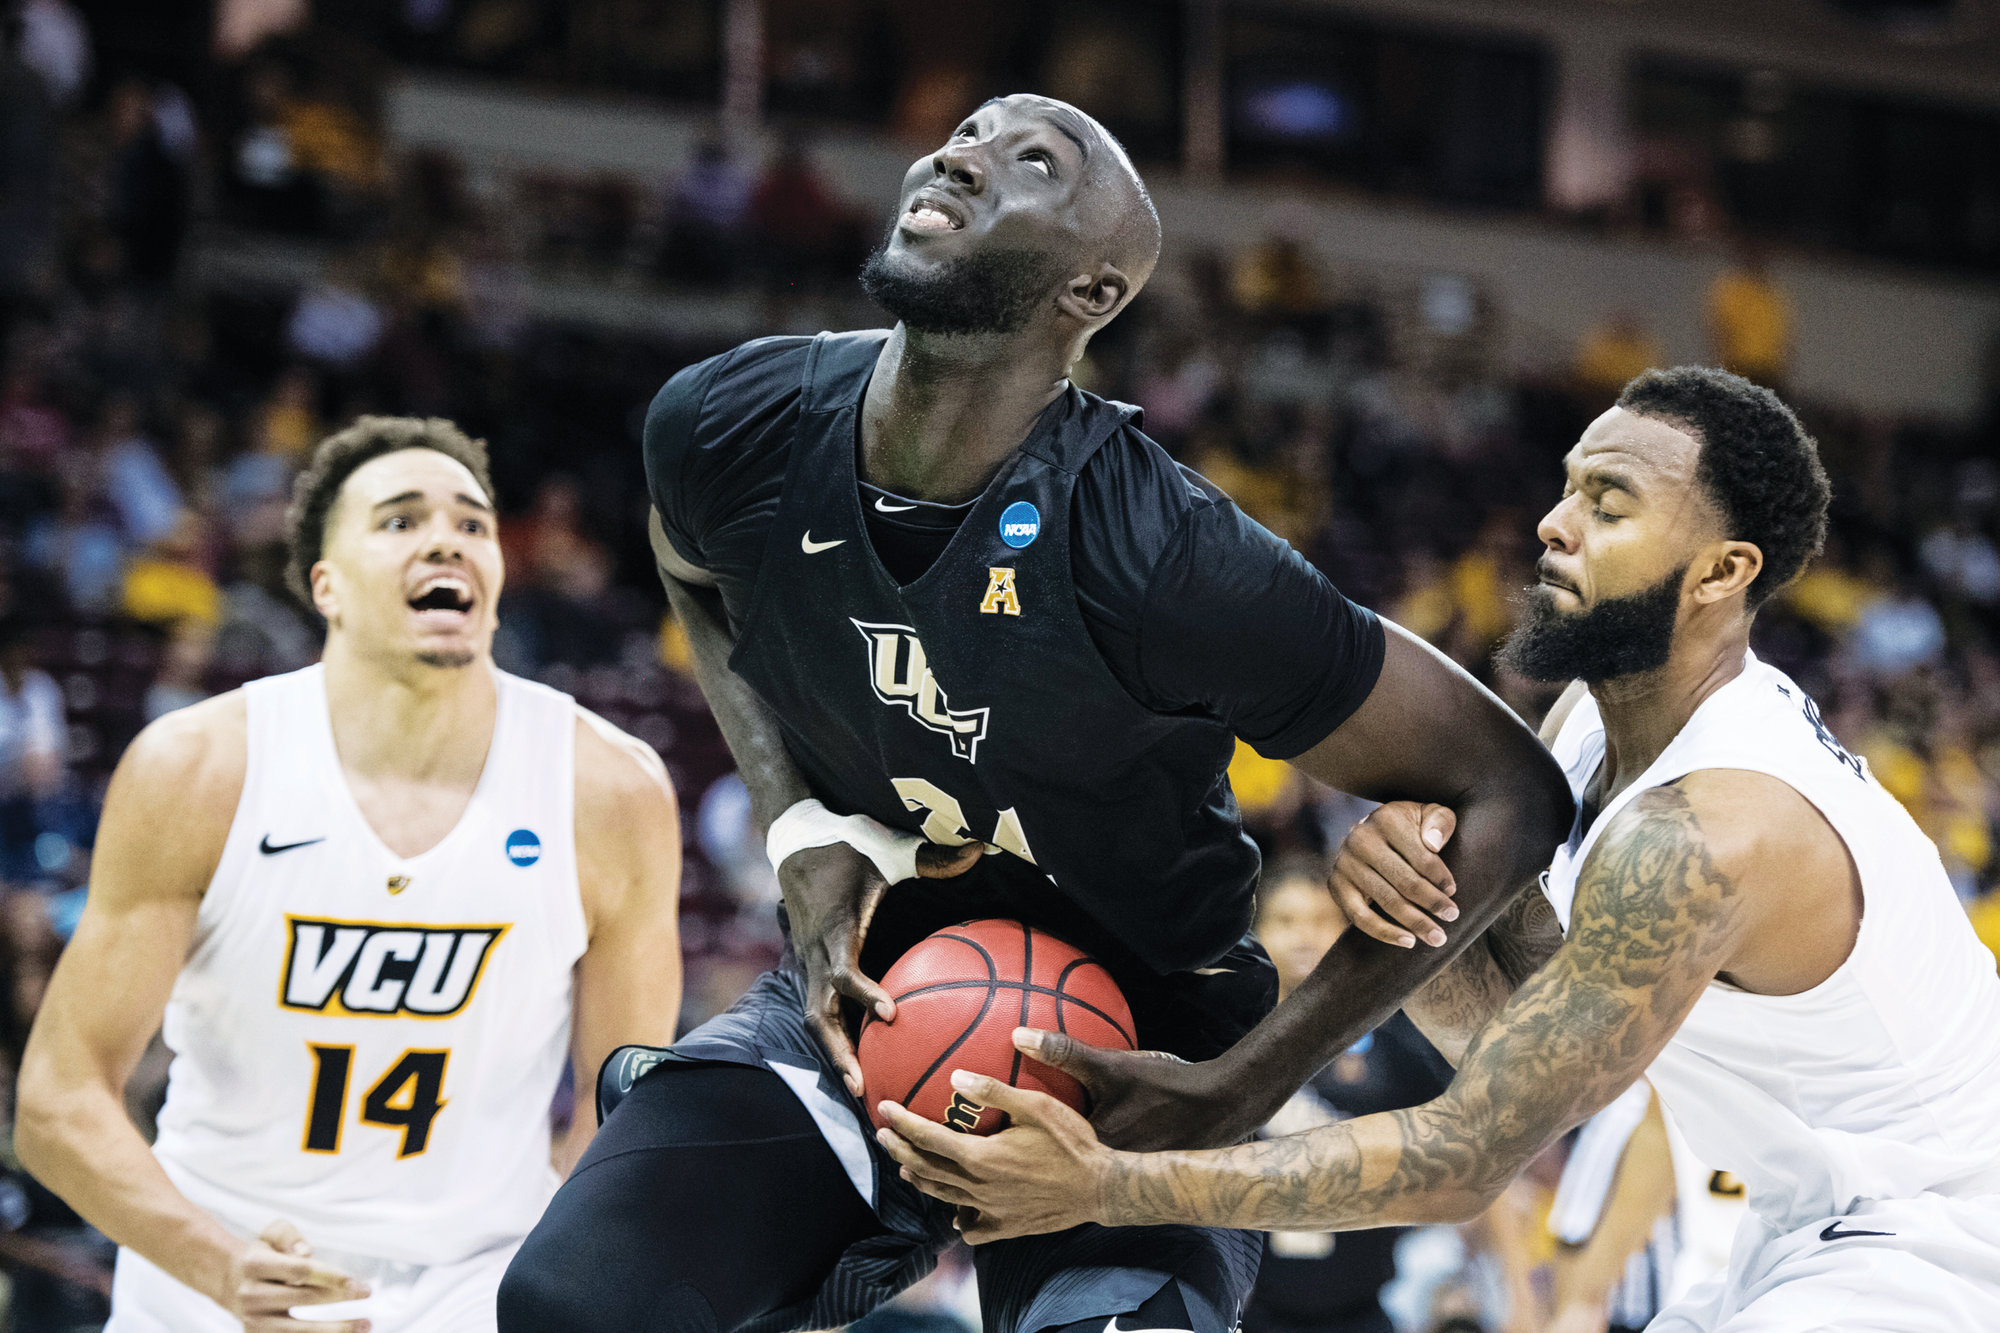 UCF Knights vs VCU Rams: Predictions, Odds and Roster Notes